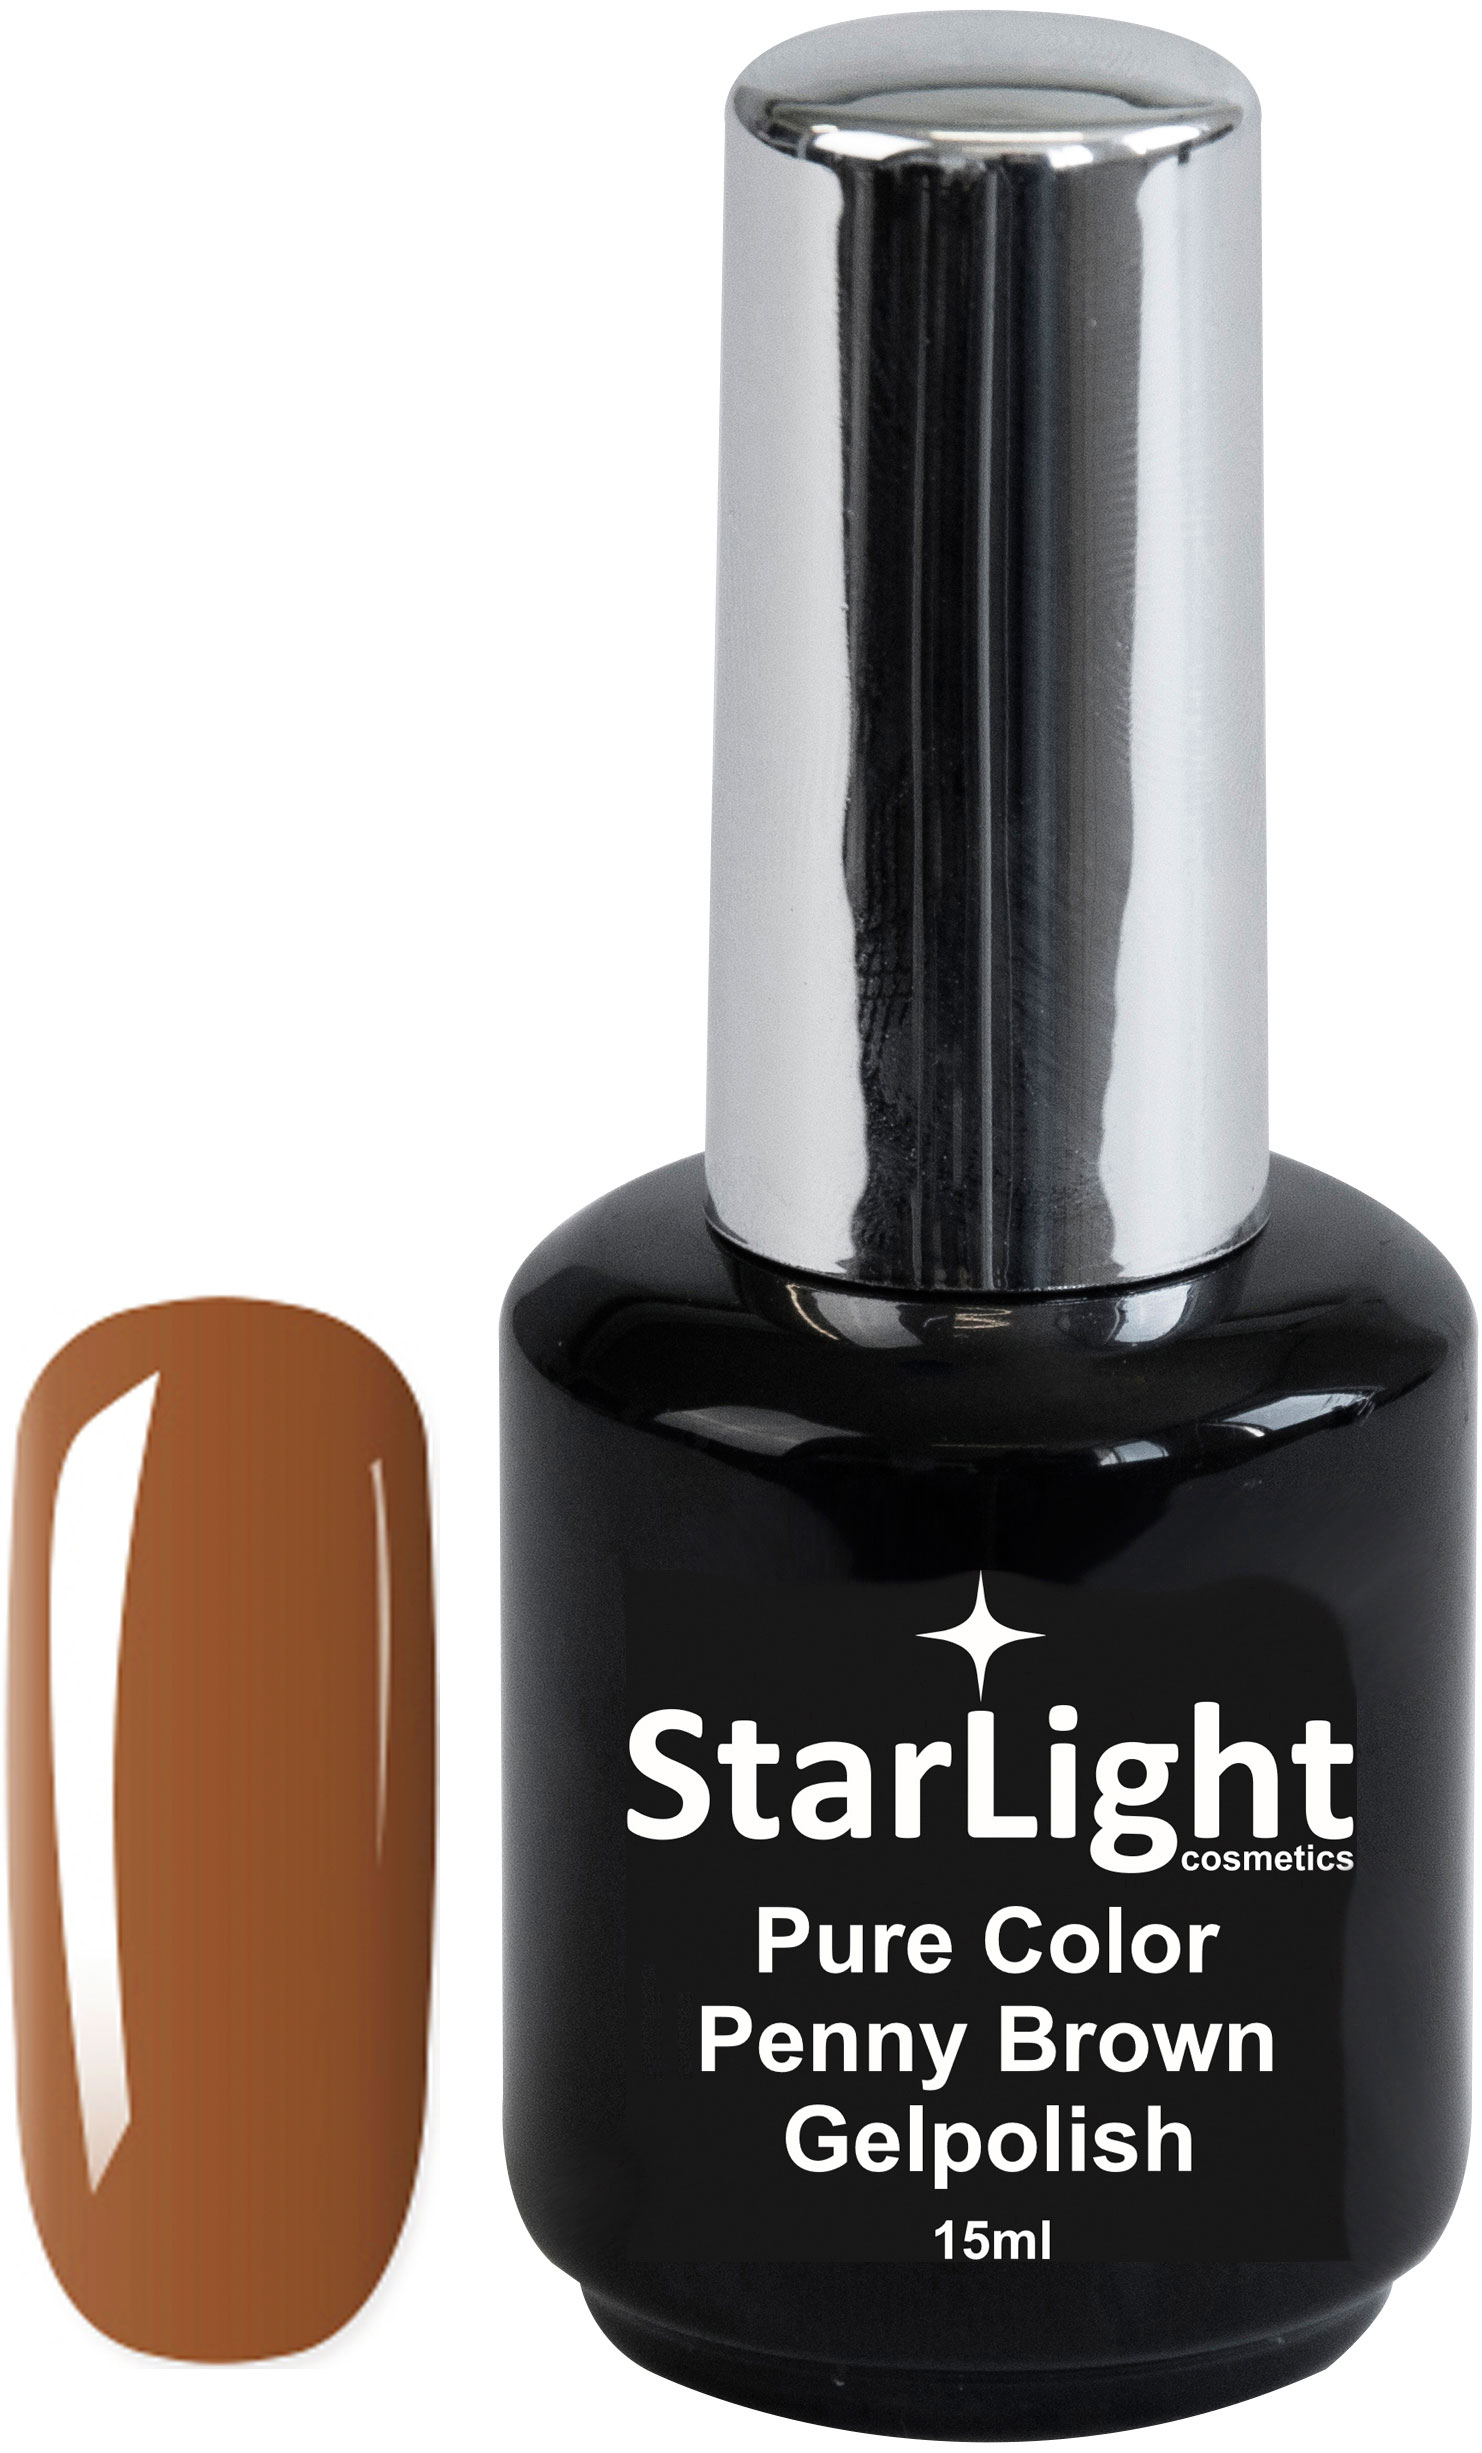 Naglar Gelpolish Pure Color Penny Brown - 15 ml